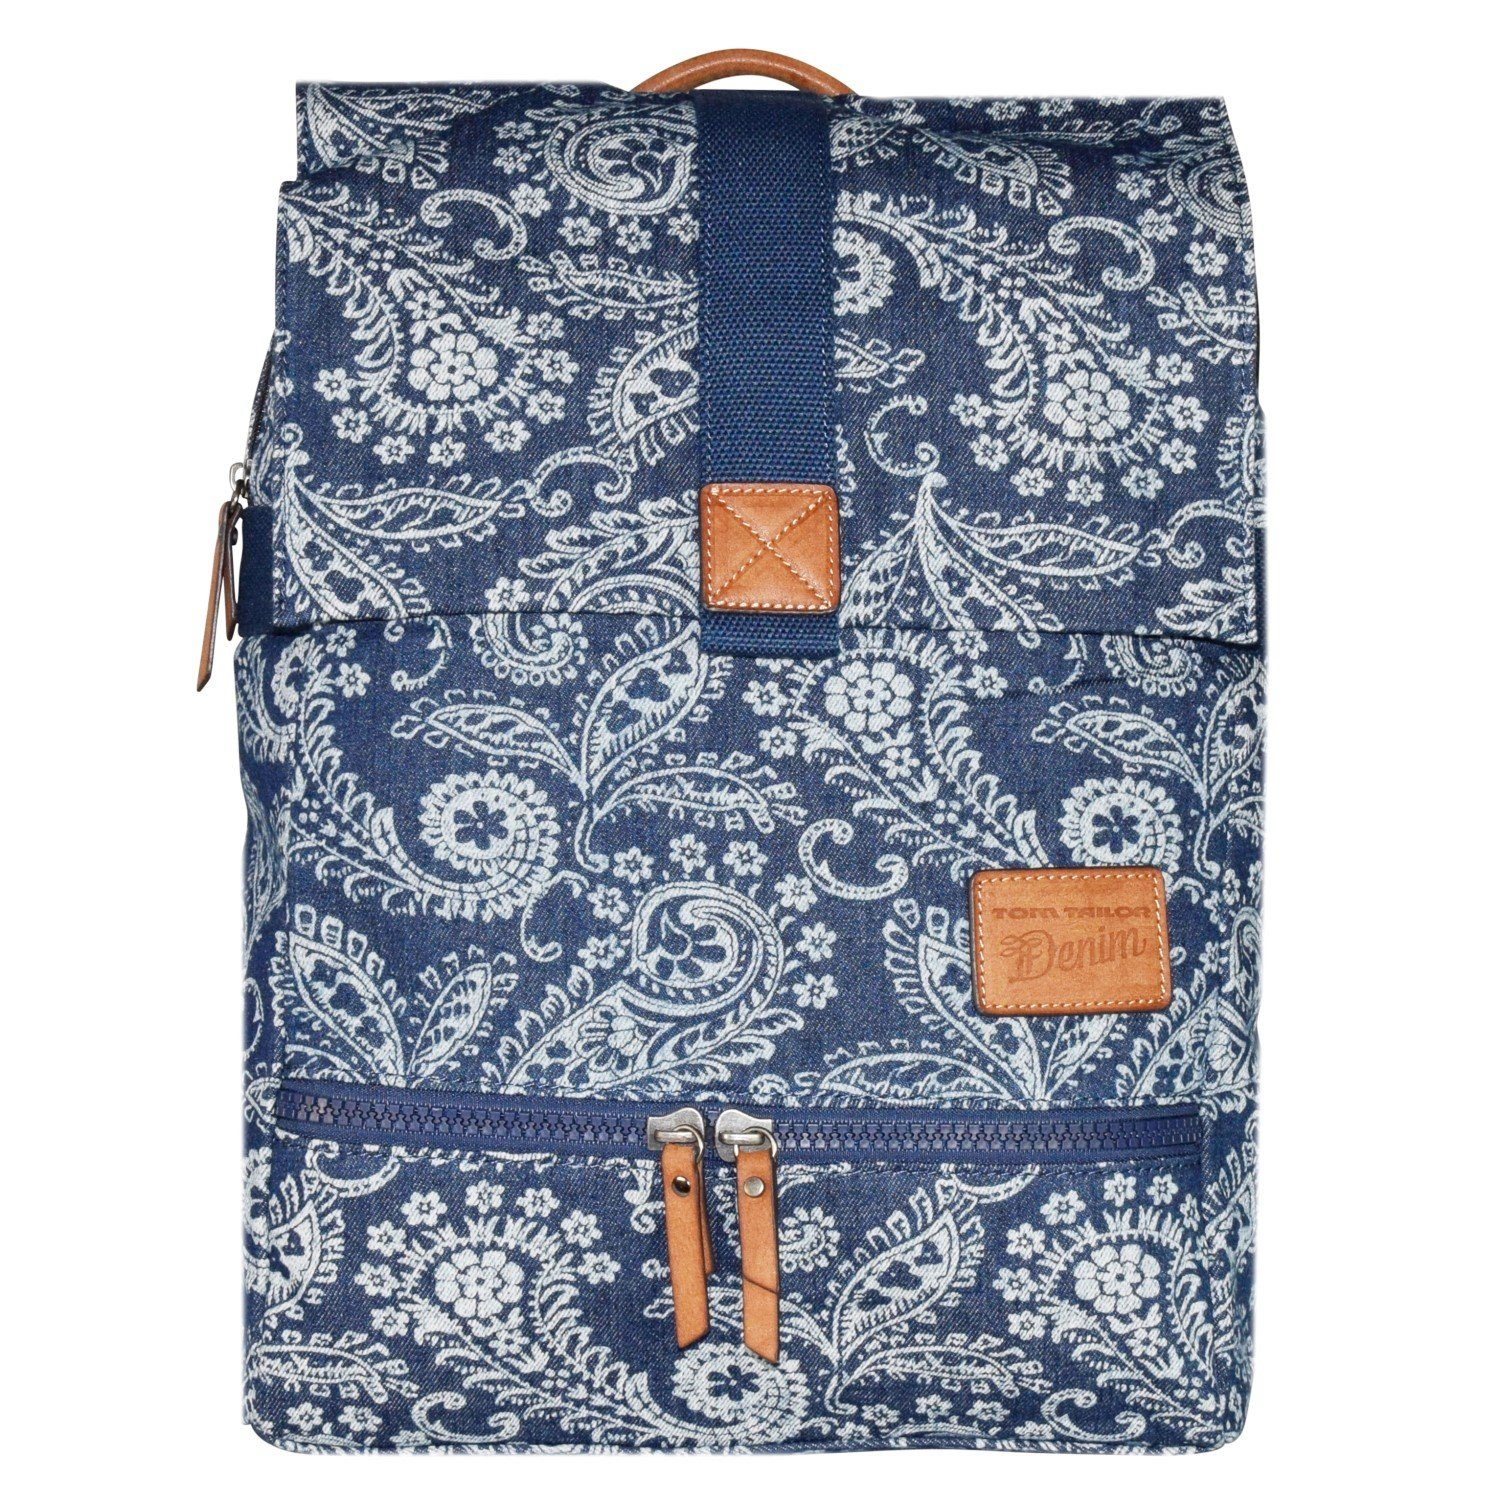 TOM TAILOR Denim Madison City Rucksack 42 cm